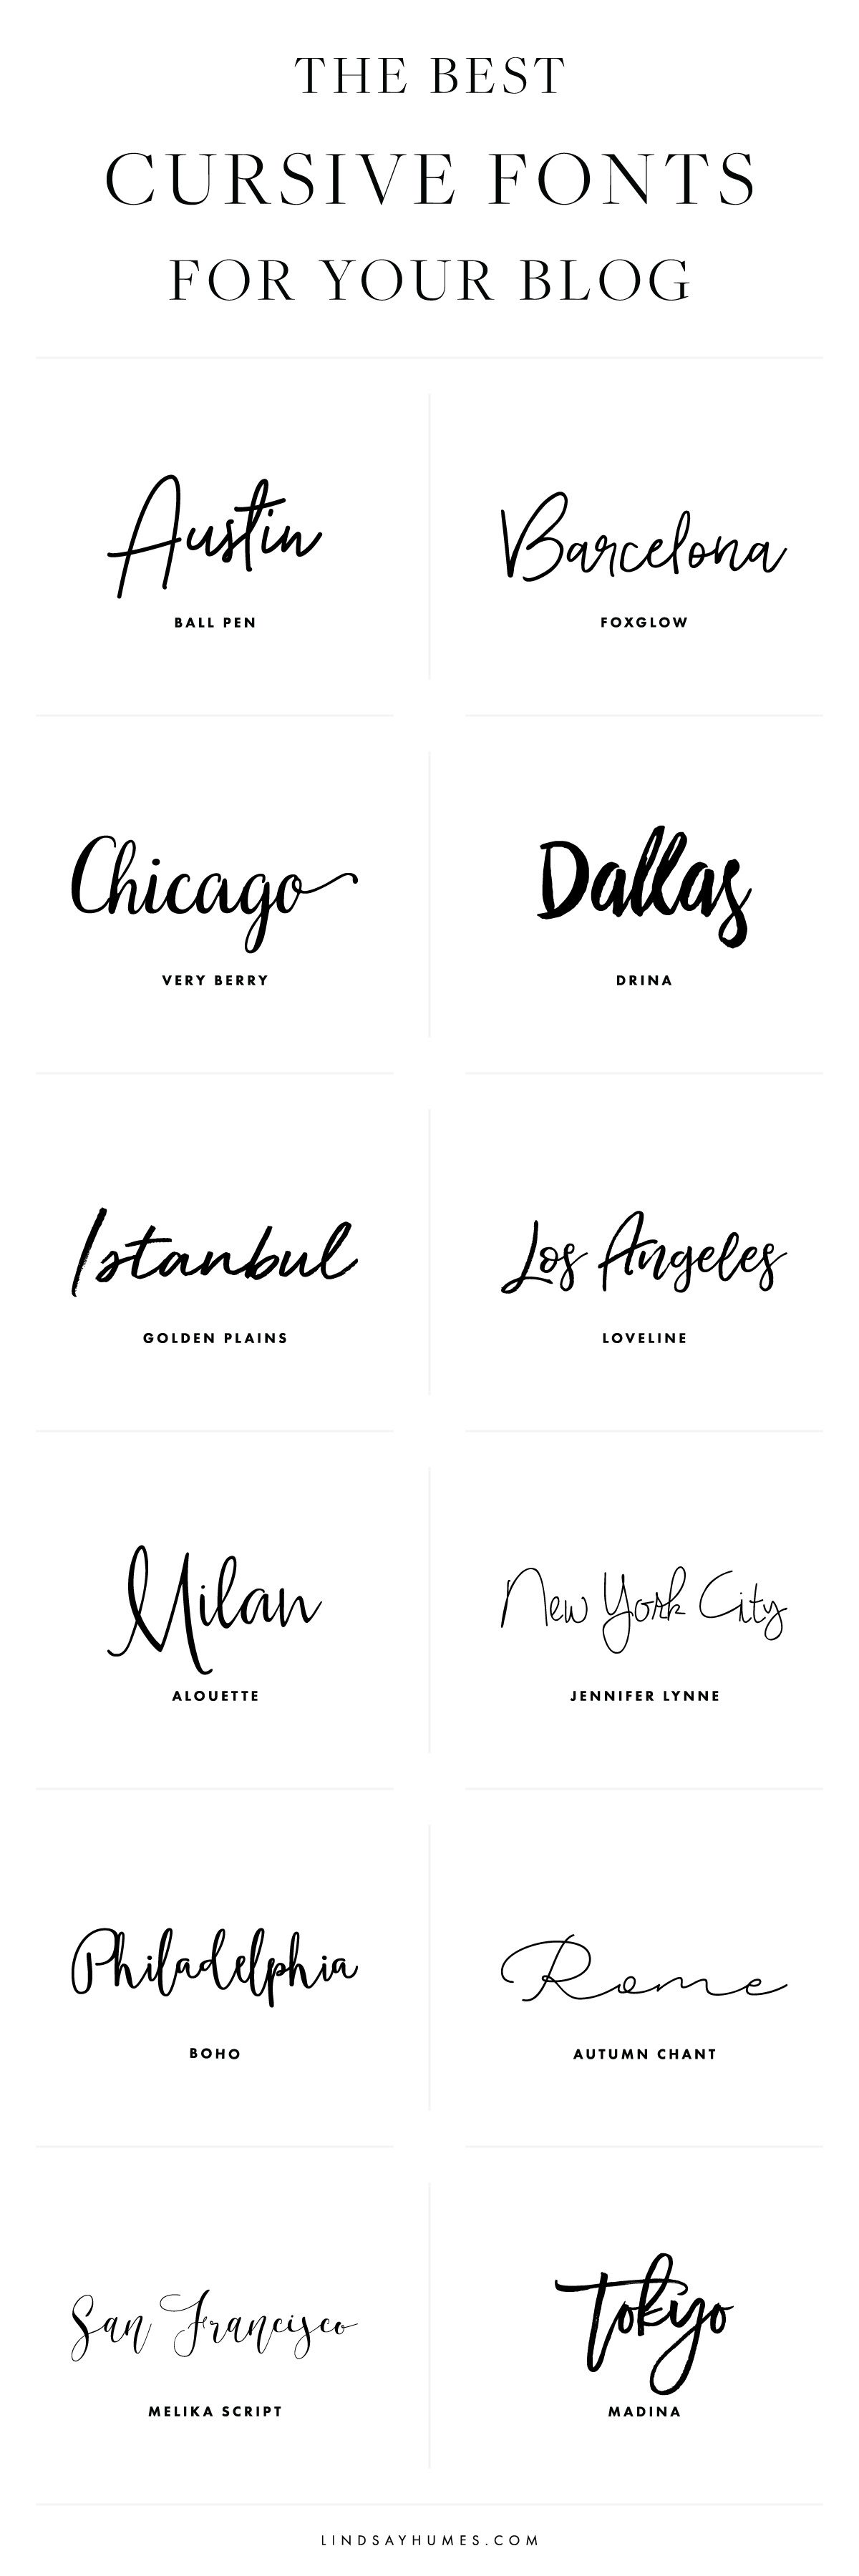 How To Use Cursive Fonts In Your Blog Design